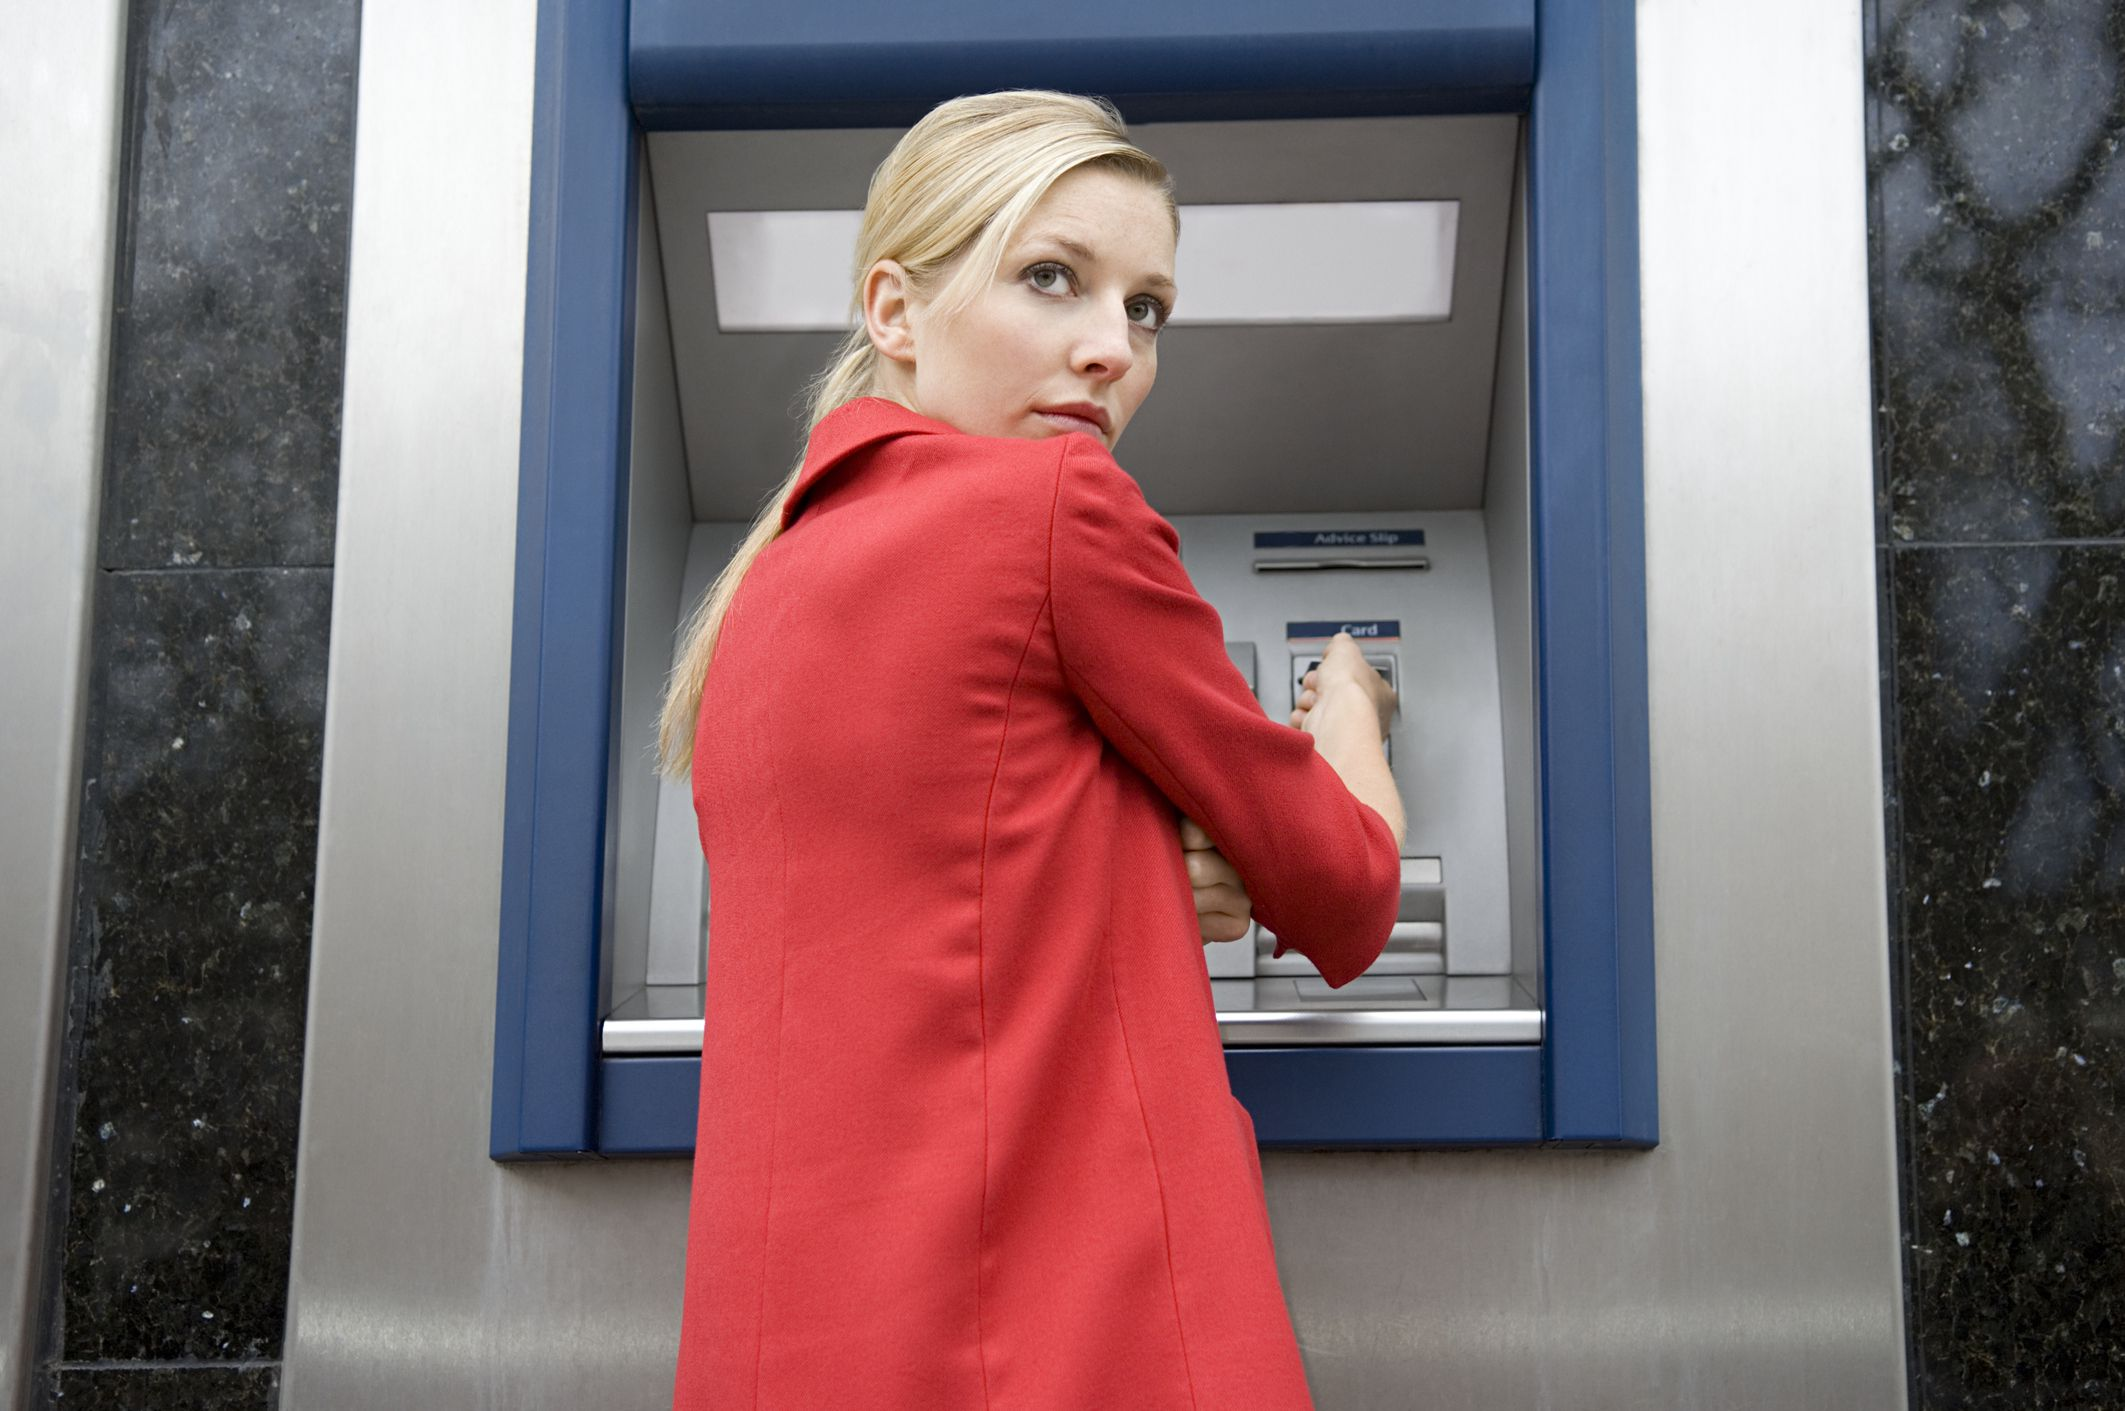 5 Risky Places to Swipe Your Debit Card